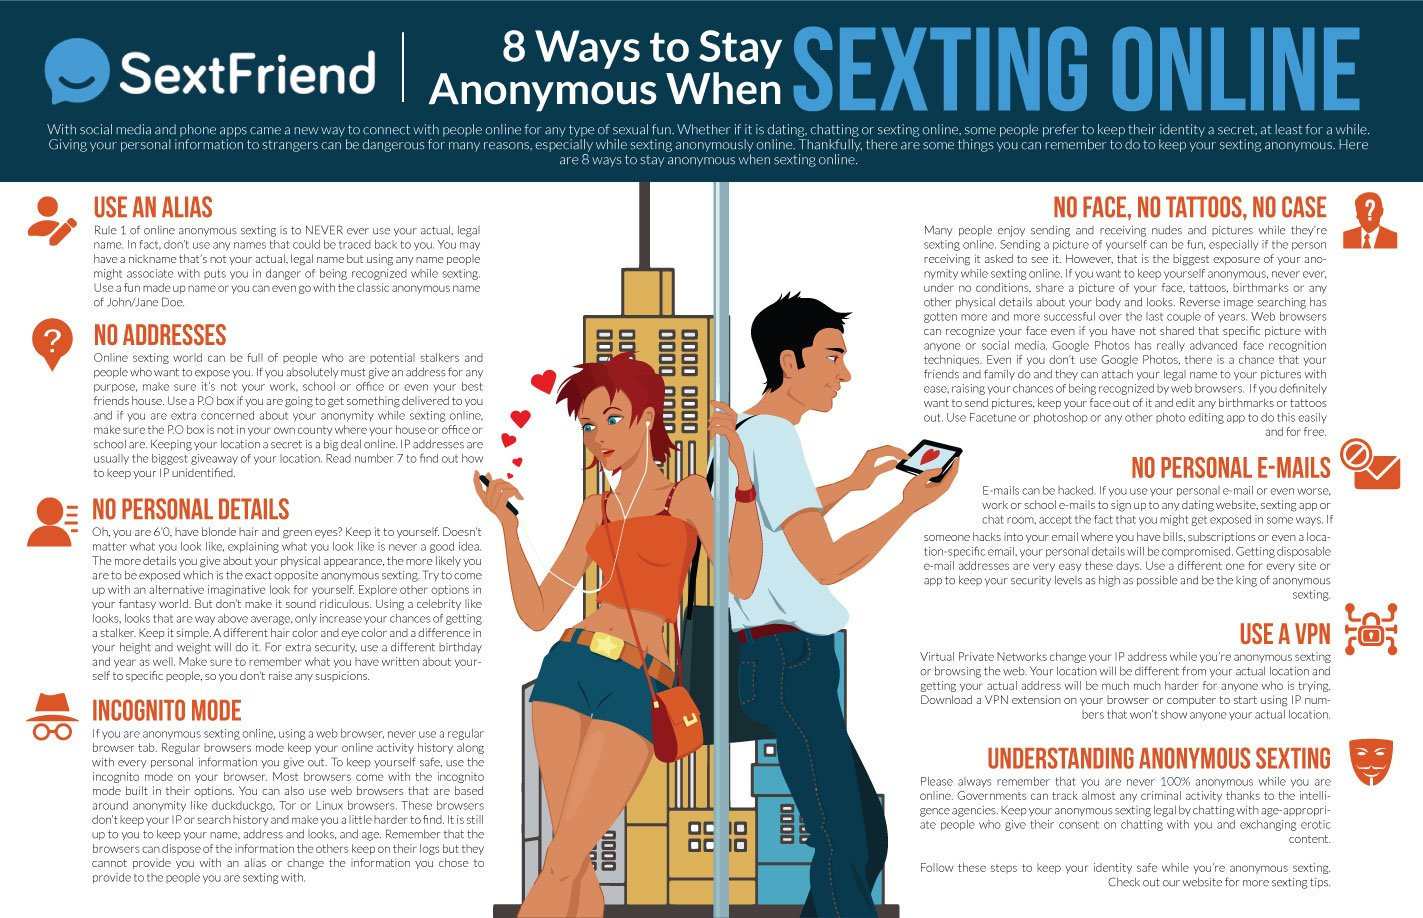 Sexting Anonymous Infographic